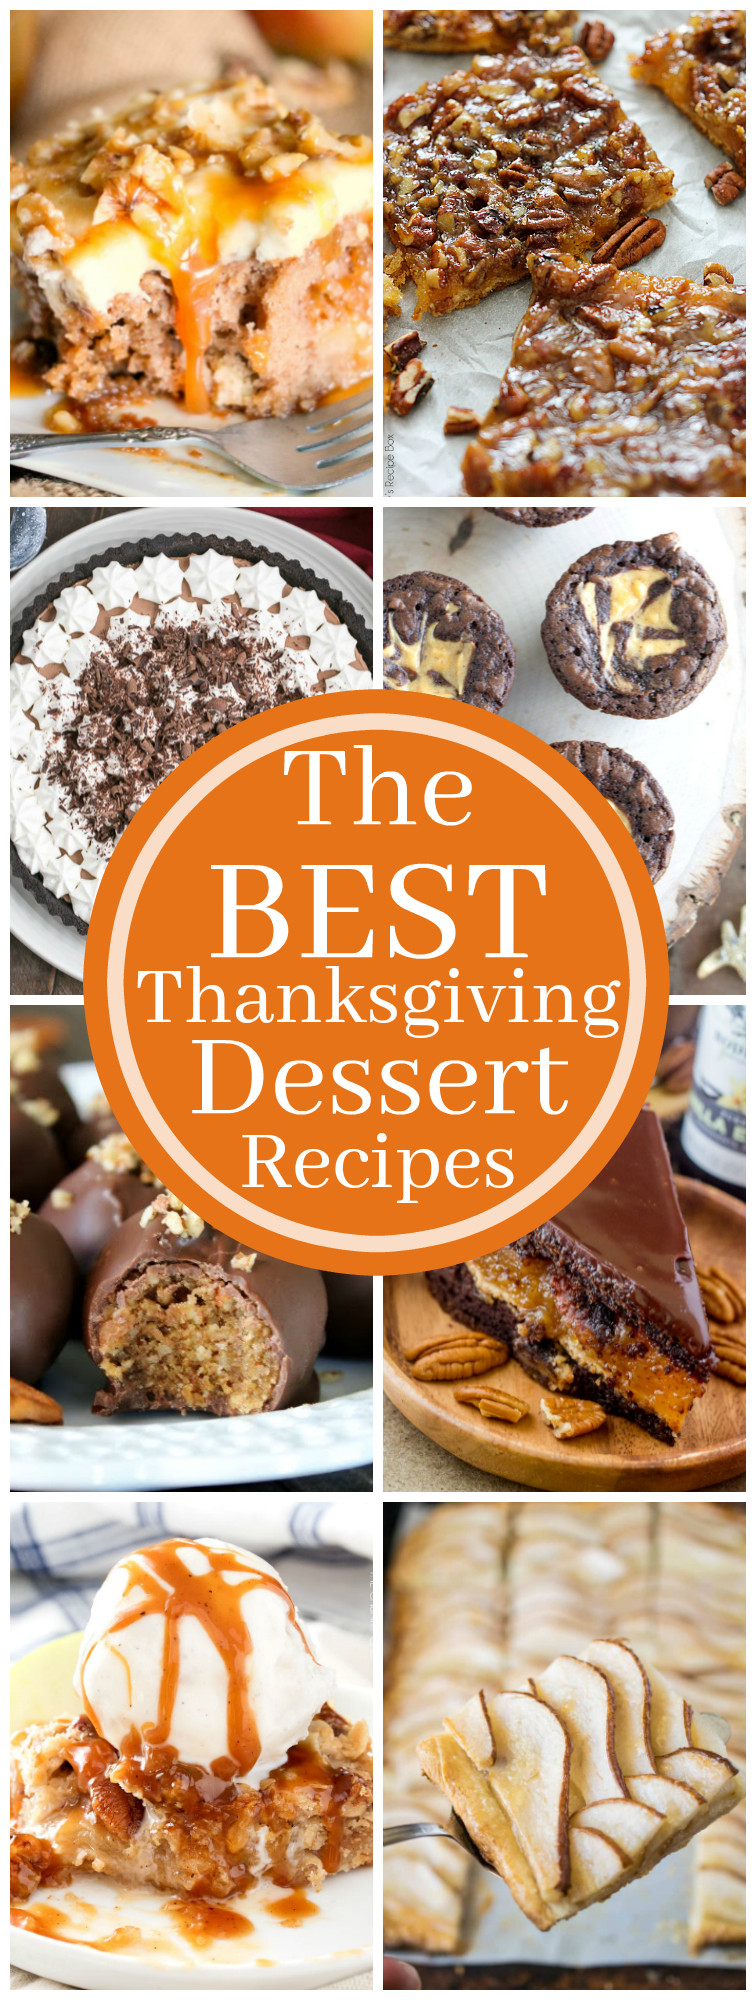 Best Thanksgiving Dessert Recipes  The Best Thanksgiving Dessert Recipes The Chunky Chef